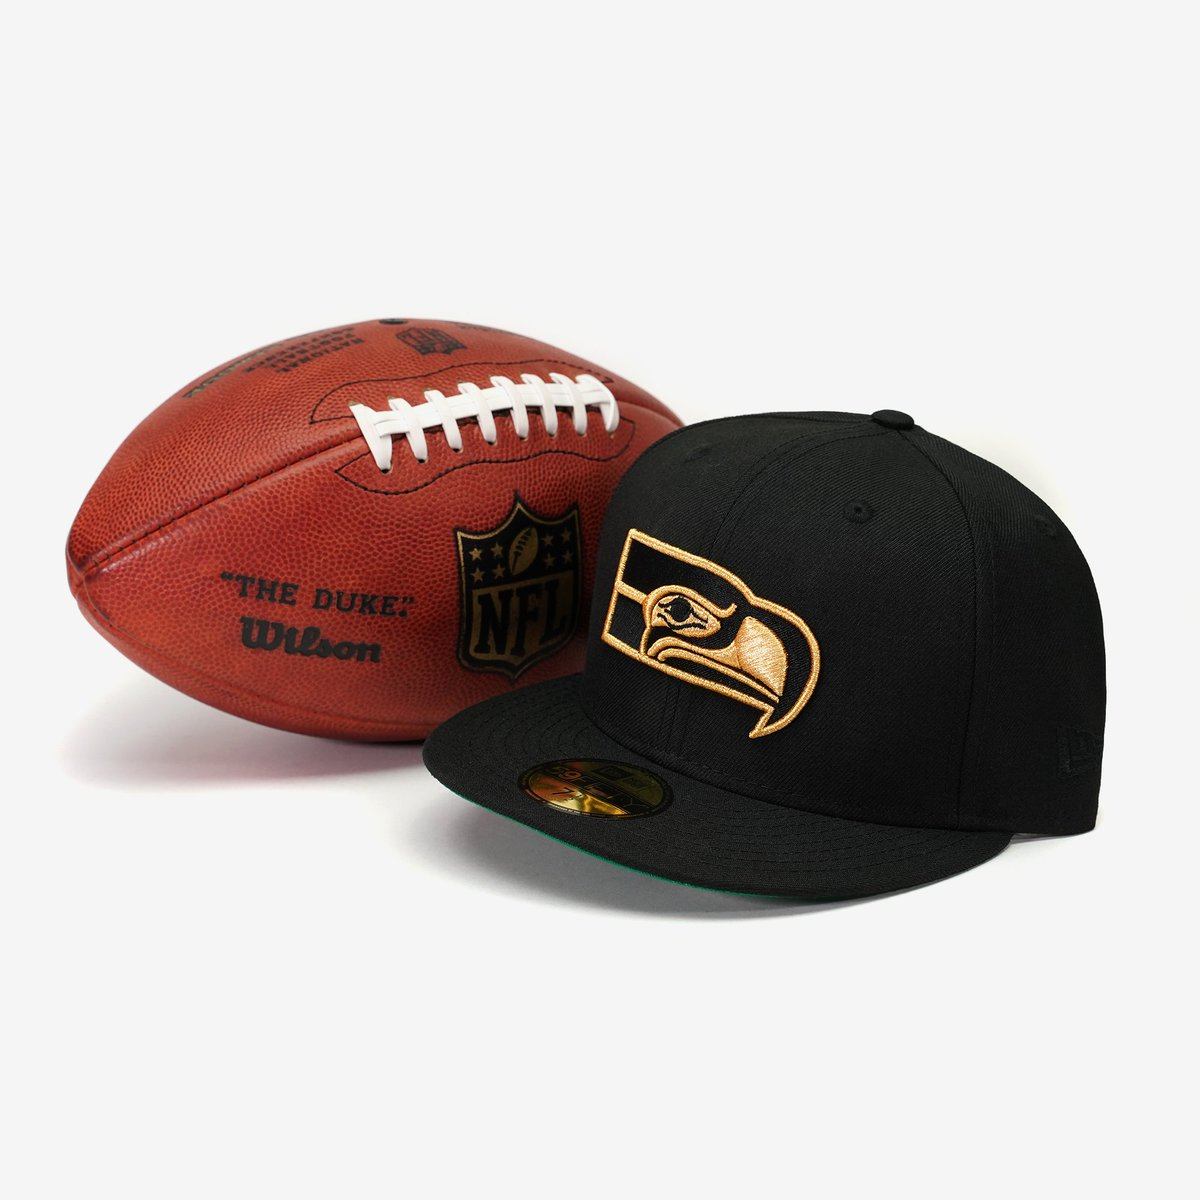 test Twitter Media - 🏈 SEAHAWKS 🏈 SHOP 👉 https://t.co/wgtKnqIZrD #newera #neweracap #59fifty #teamfitted #fitteds #fittedcap #cotd #capoftheday #nfl #capcollector #capaddict #cotd #flyyourownflag #rannfl #rannflsuechtig #neweraeurope #seahawks #fittedfam #fittedonly #capcollection #hatcollection https://t.co/NwdCGgJ0bU